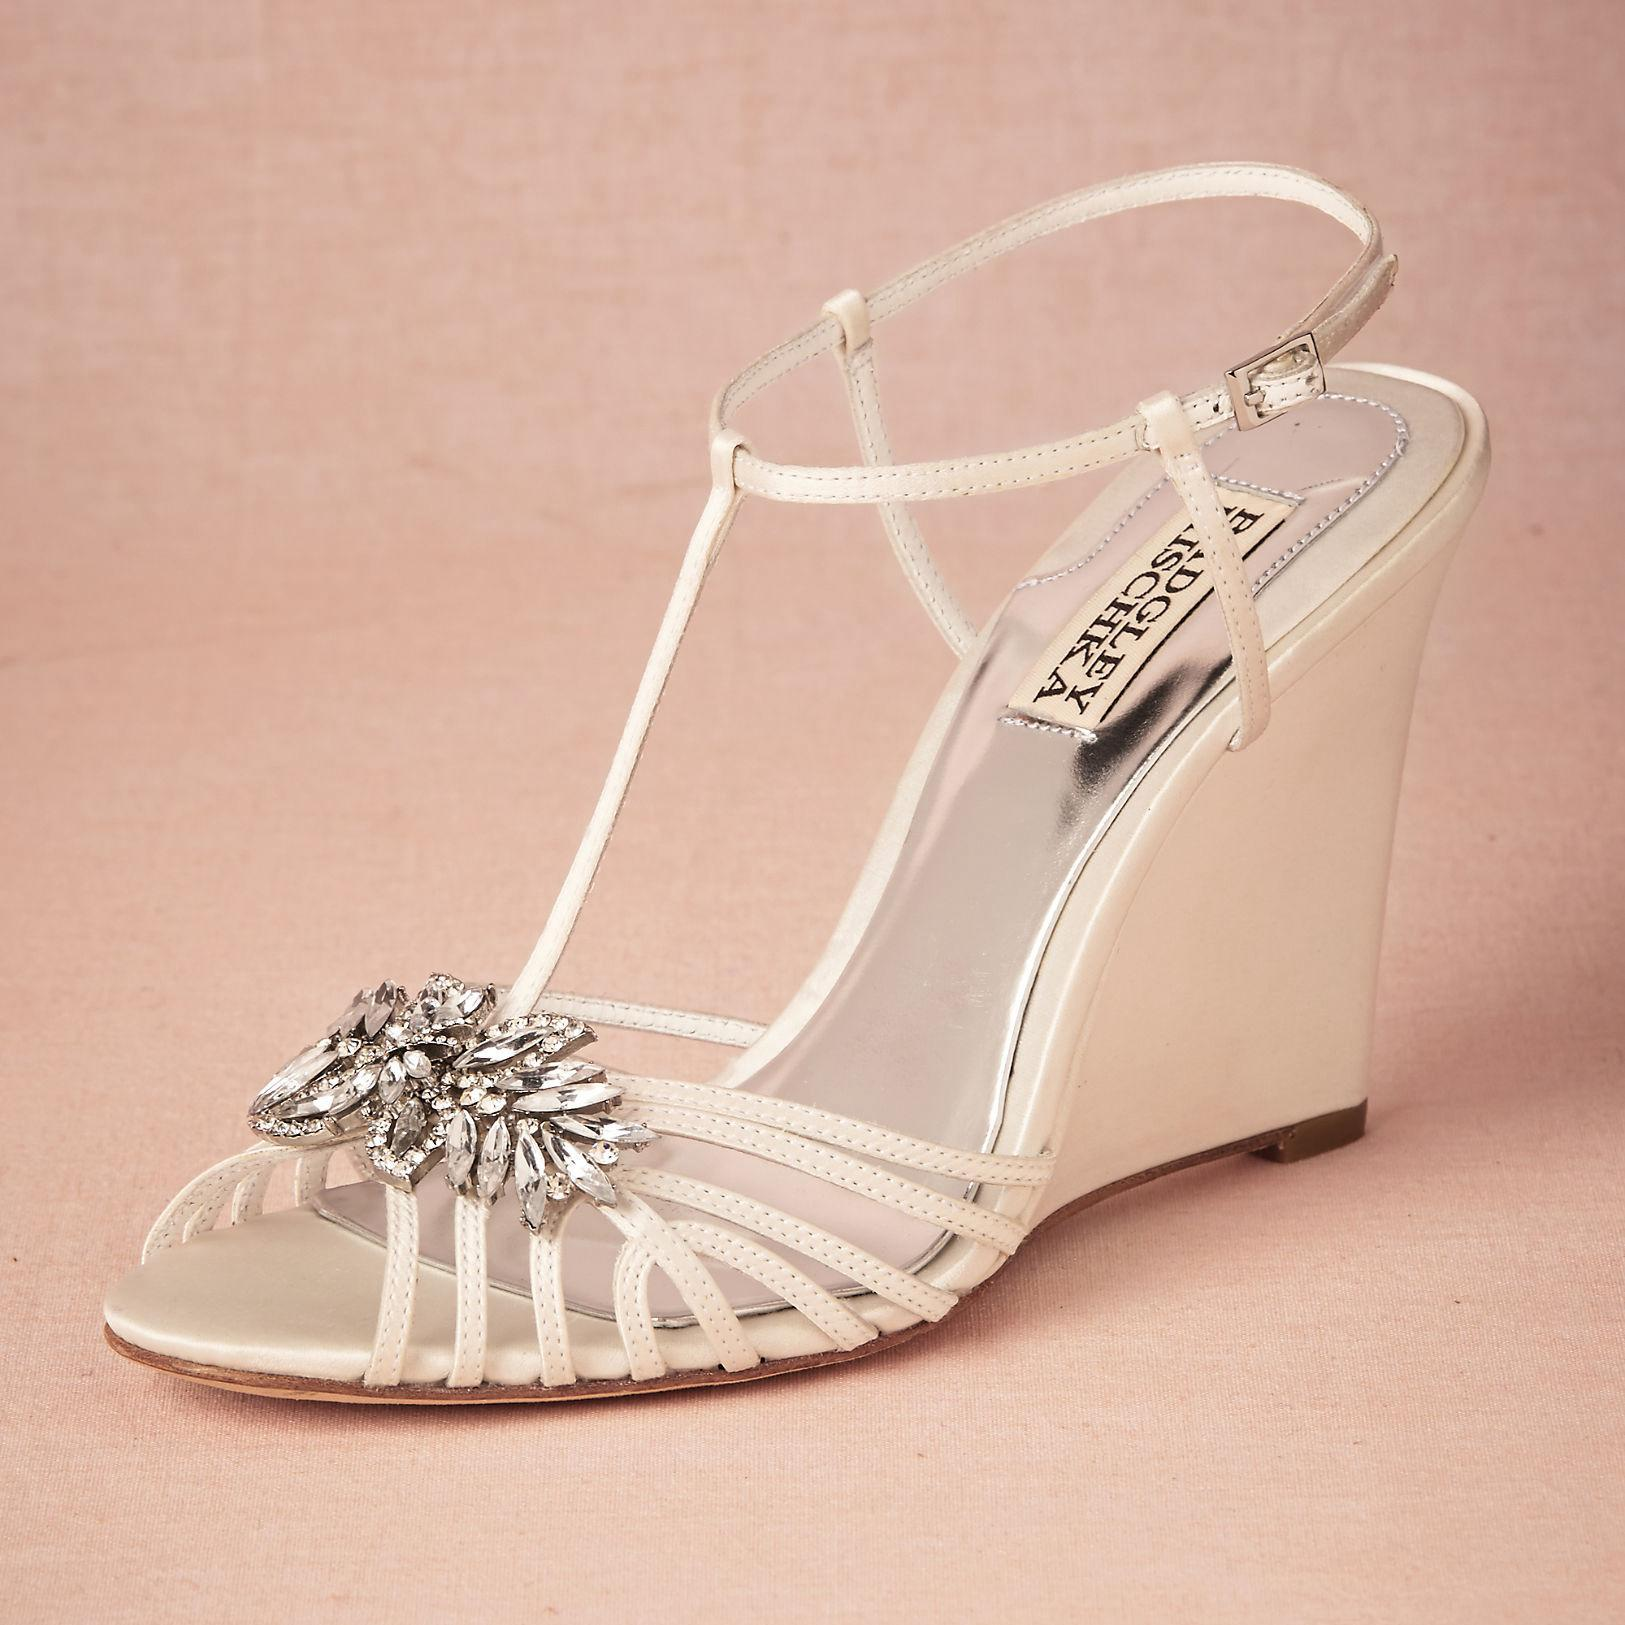 Delicate Straps Crystal Wedding Shoes Custom Pumps T Straps Buckle Closure  Stiletto Heeled Ladies Shoes 4 High Wrapped Heels Women Sandals Shoes Flat  Shoes ...